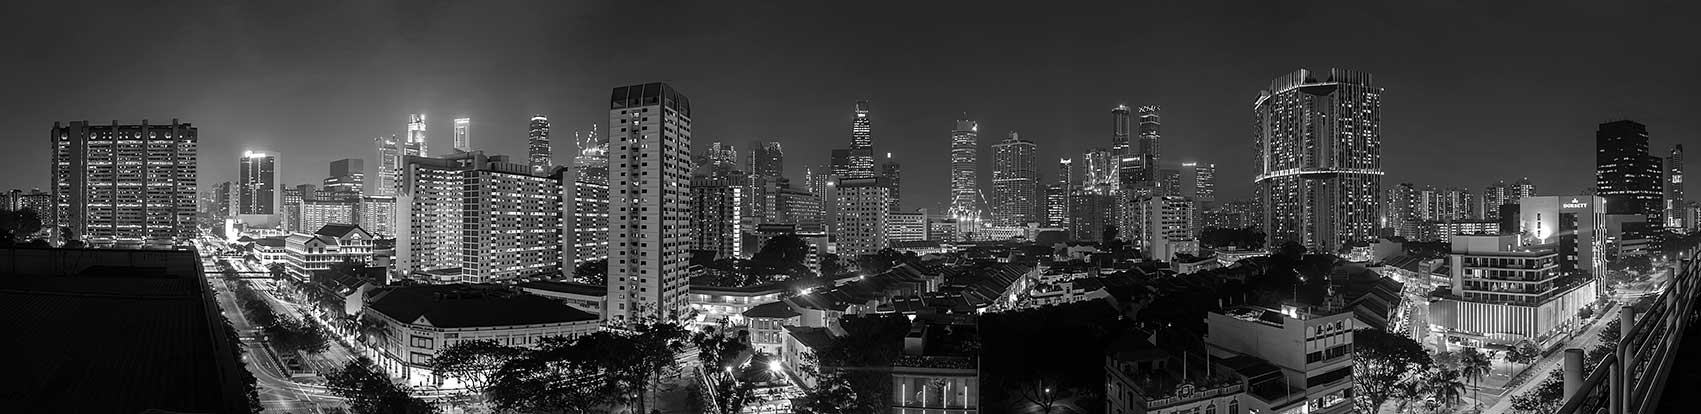 Artistic Black and White City Landscape Photographer.— Eleven ...